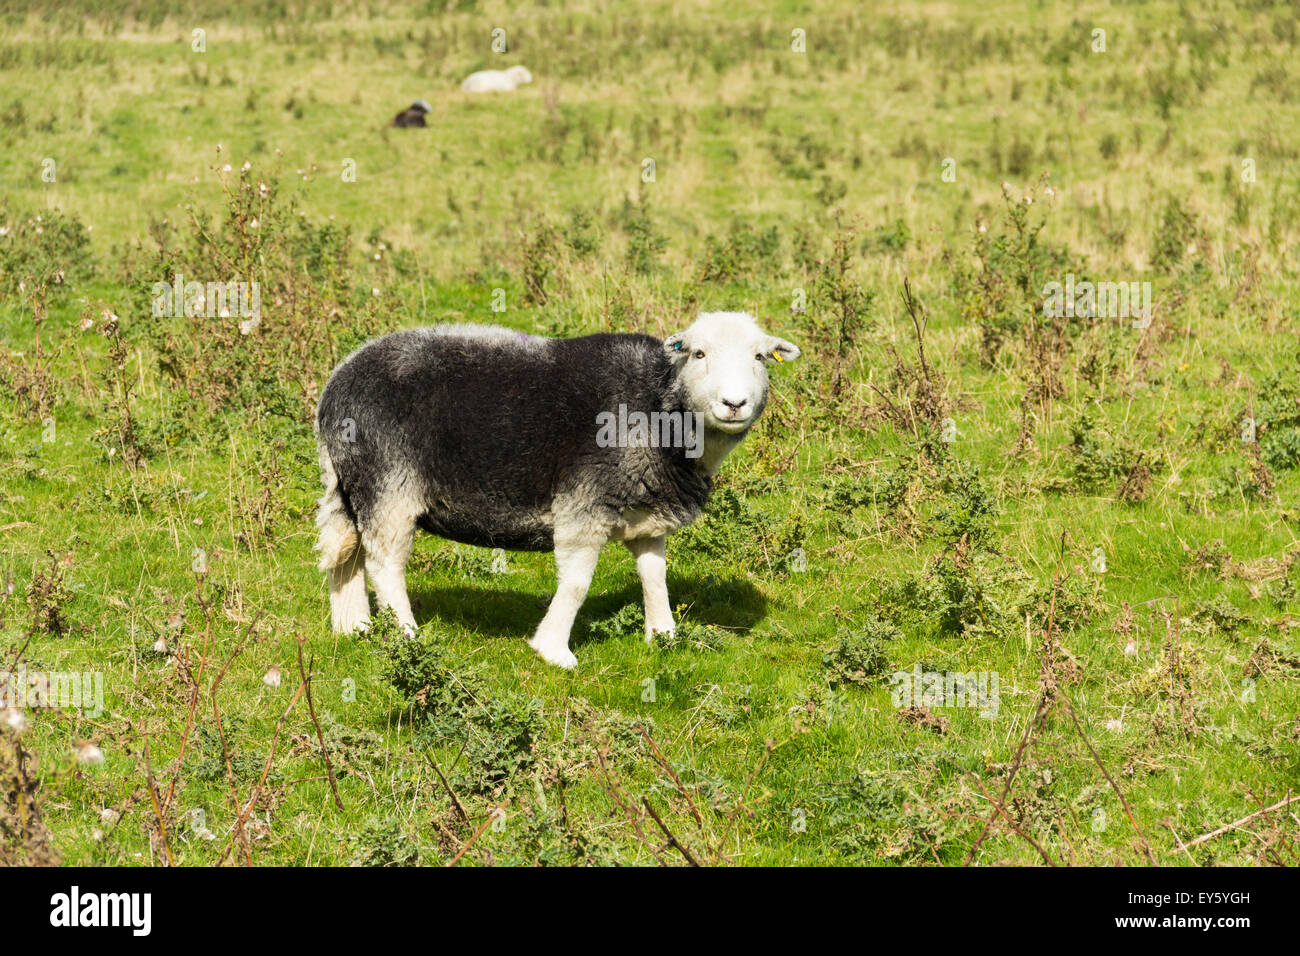 Herdwick sheep on Lancashire moorland. Herdwicks are a hardy breed of sheep native to the Cumbria and Lake District - Stock Image